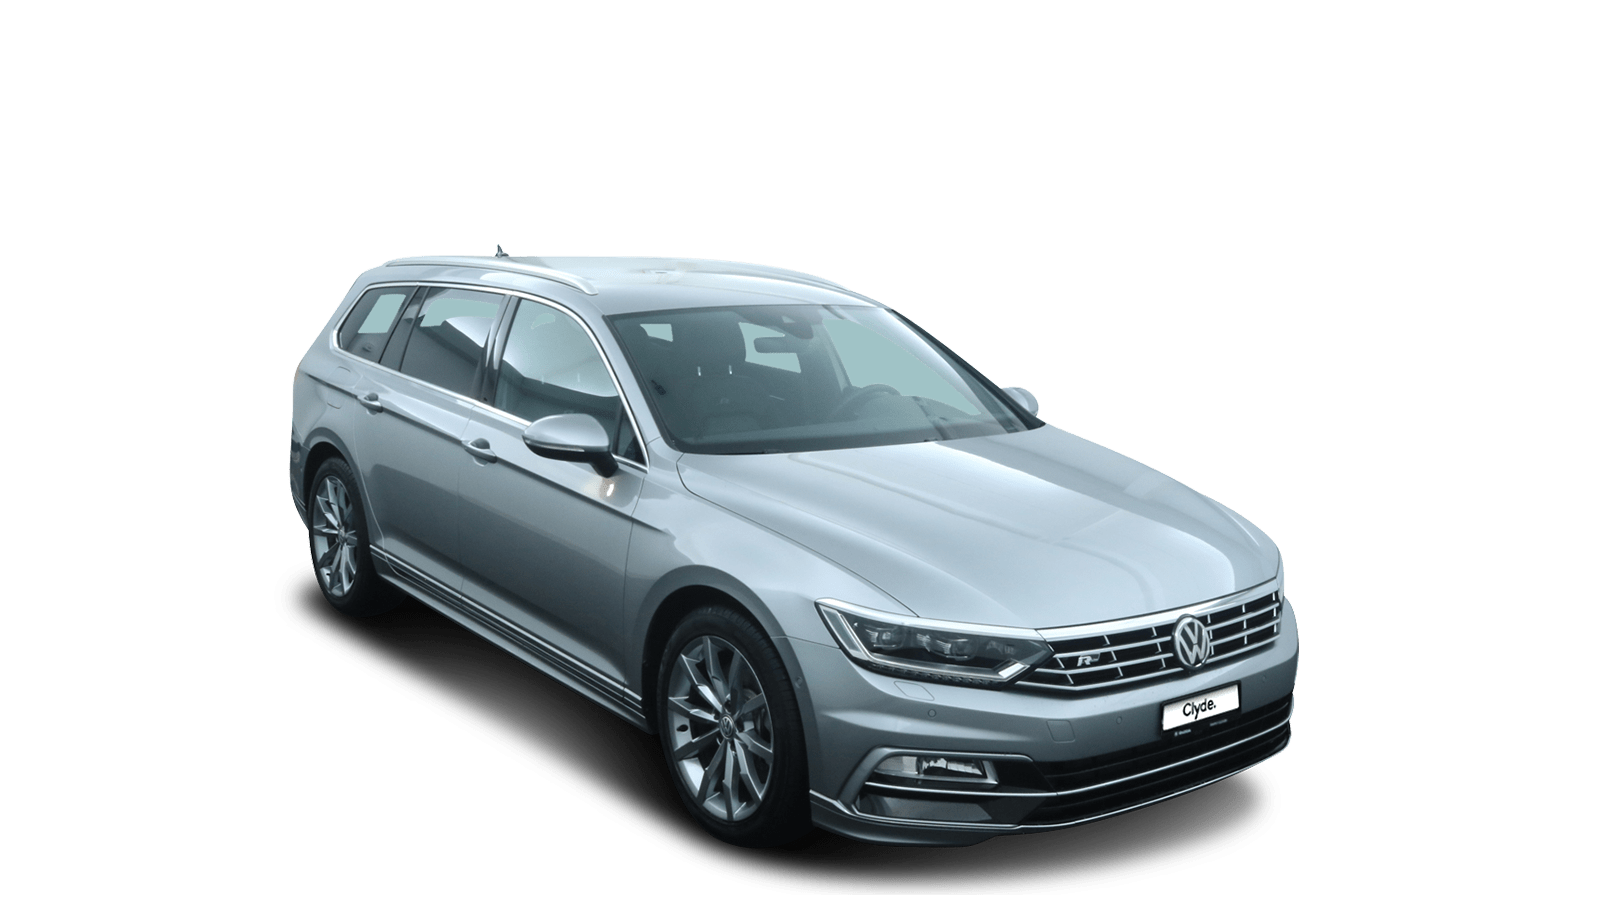 VW Passat Variant Silber front - Clyde Auto-Abo